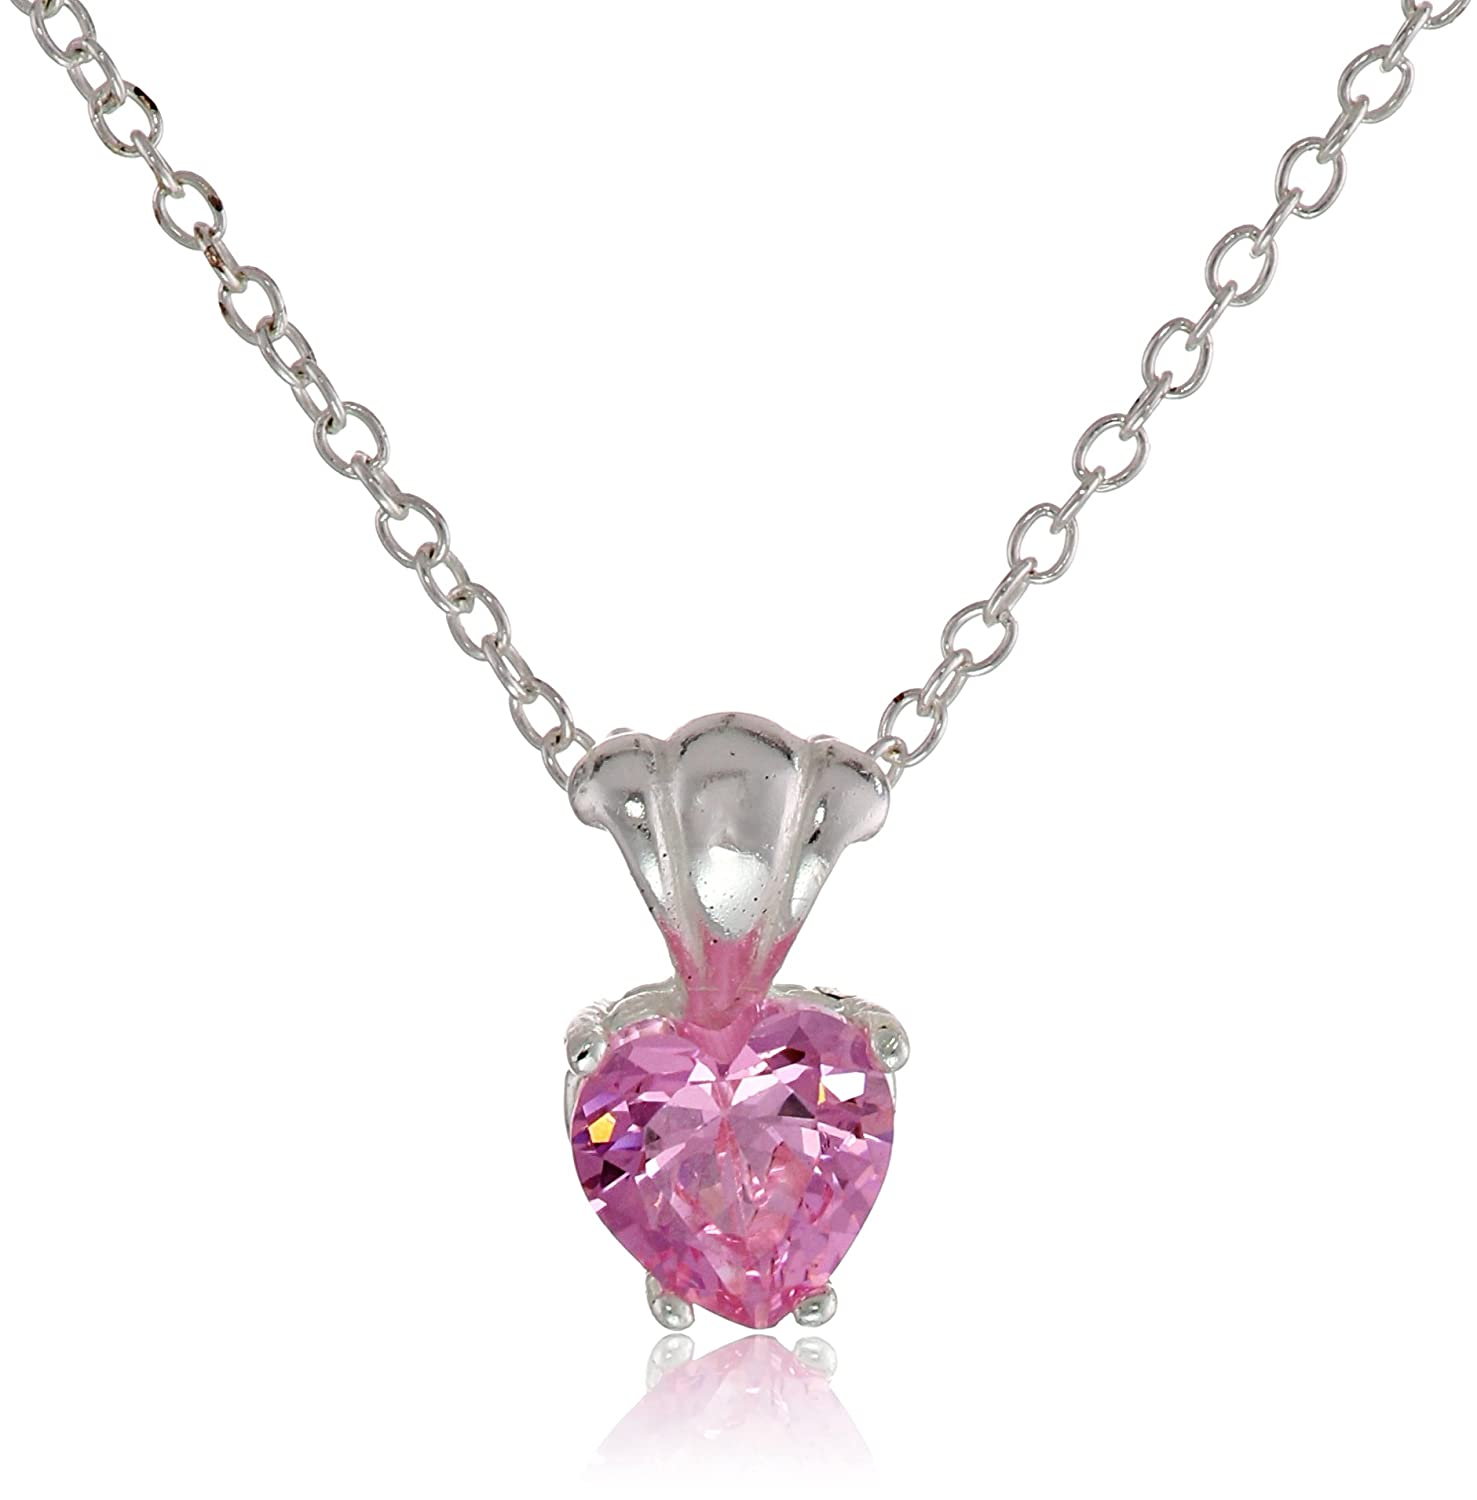 Amazon disney cubic zirconia heart charm pendant necklace jewelry aloadofball Image collections